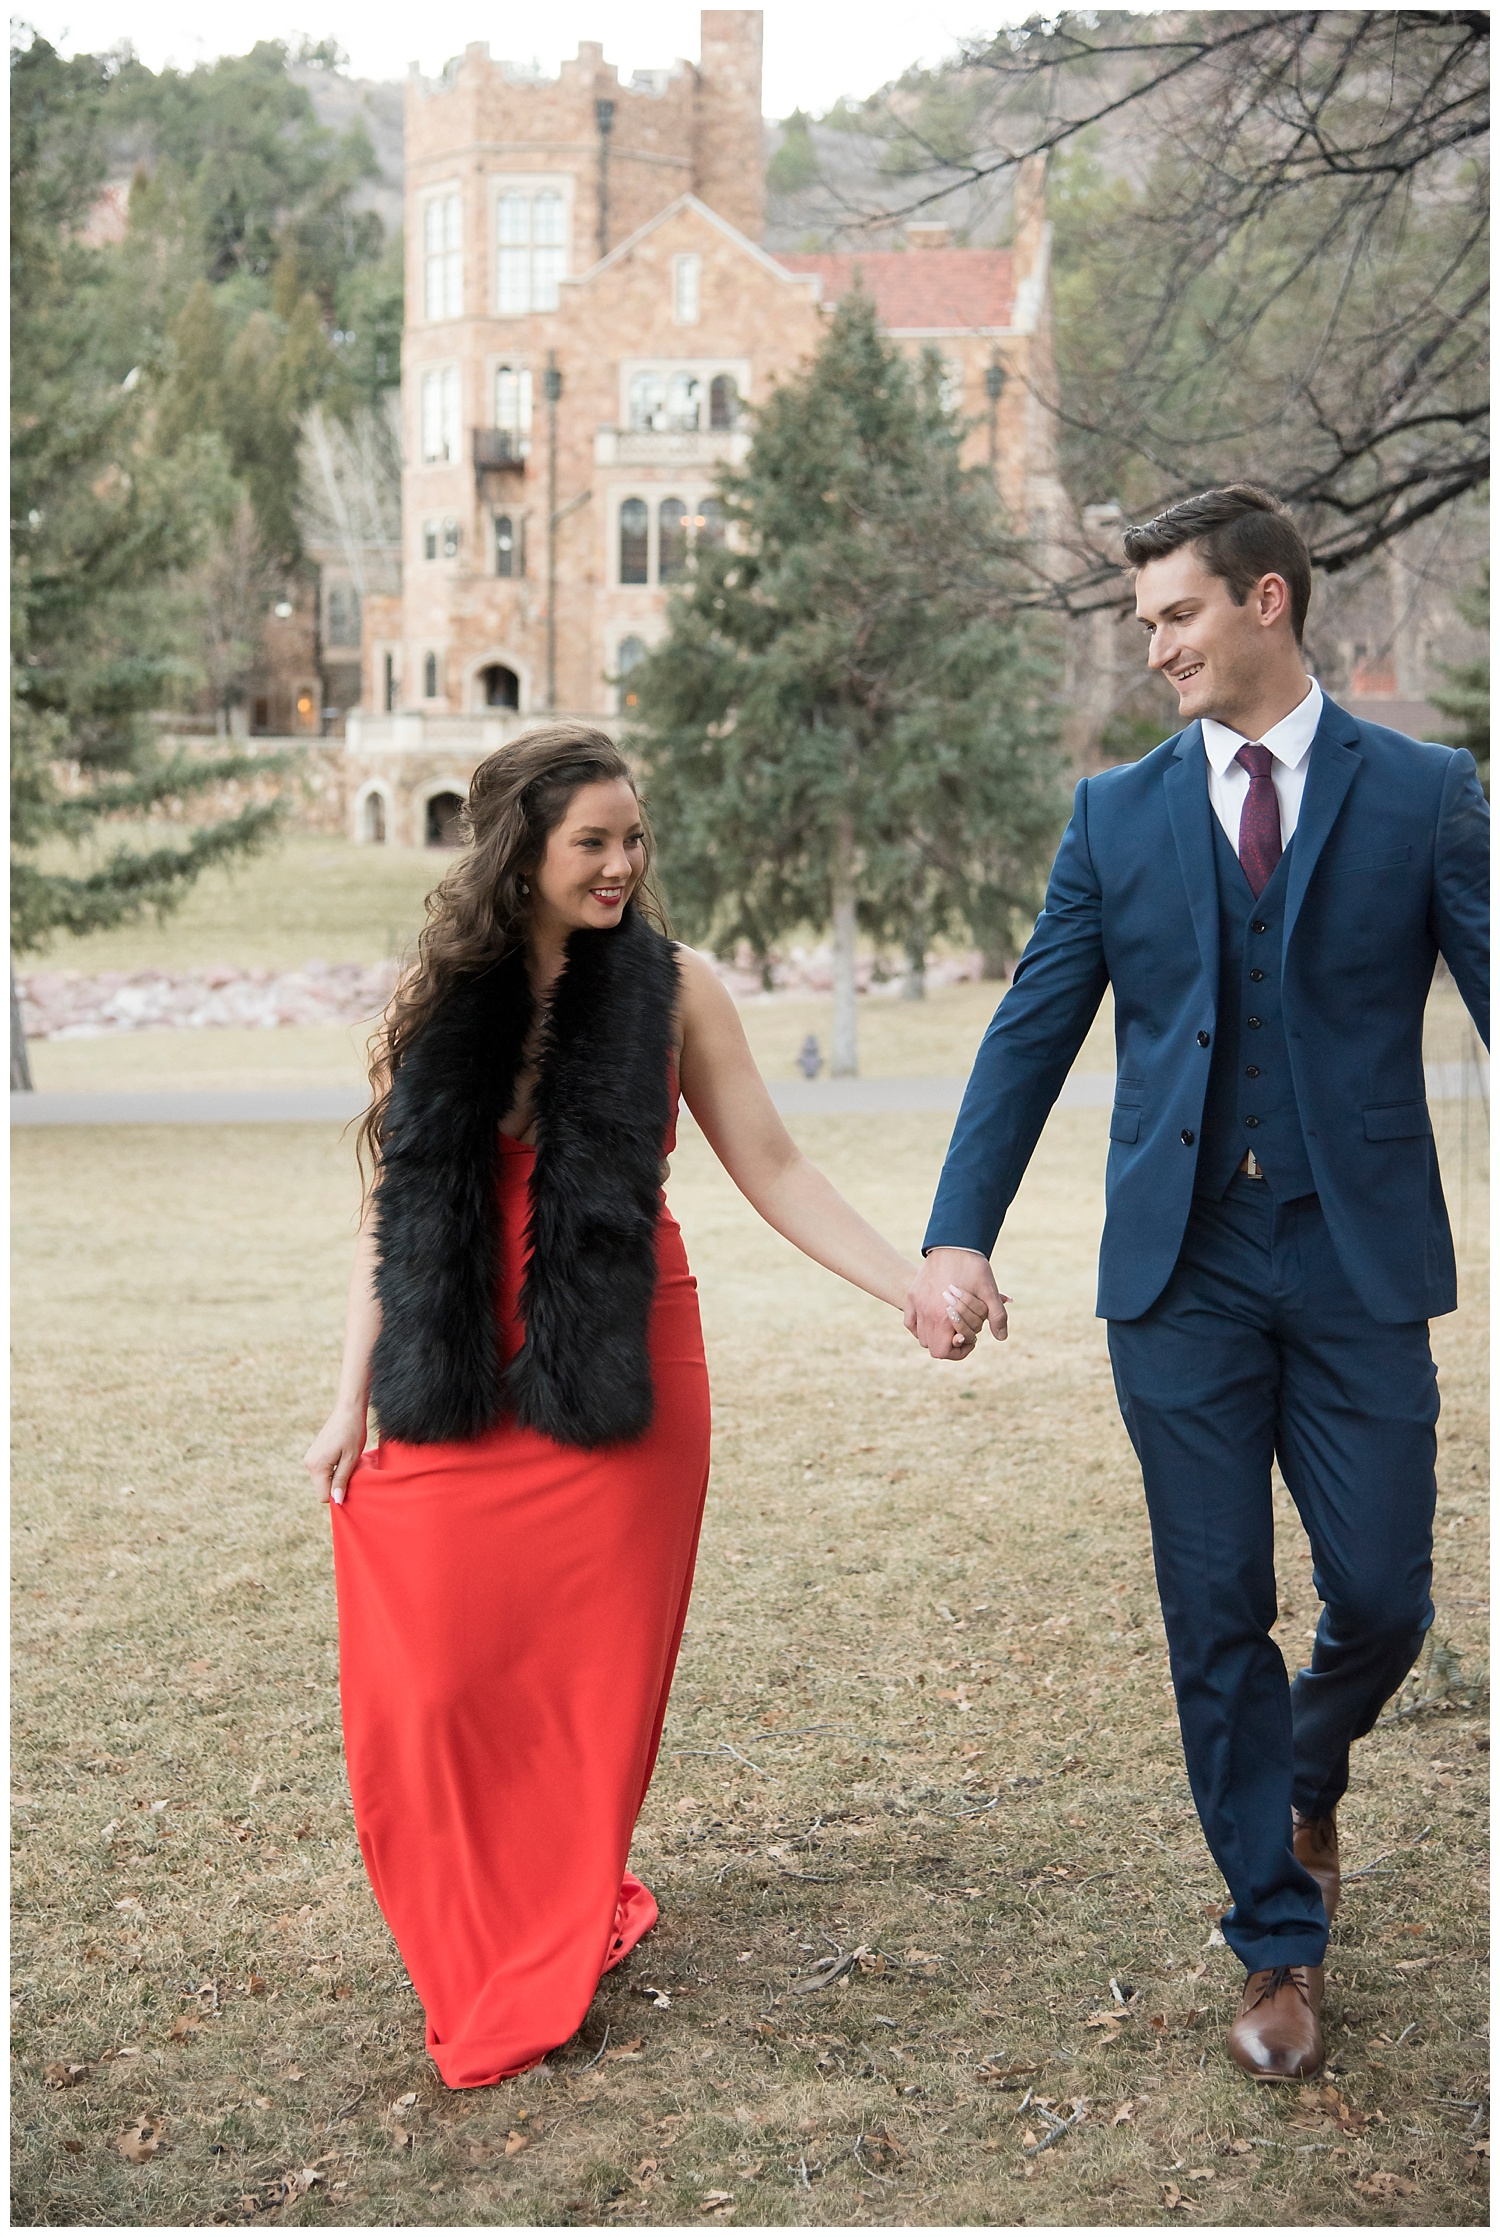 Real Couple Holding Hands| Nicholas and Eden's Surprise Proposal at Glen Eyrie Castle | Colorado Springs Photographer | Farm Wedding Photographer | Apollo Fields Wedding Photojournalism